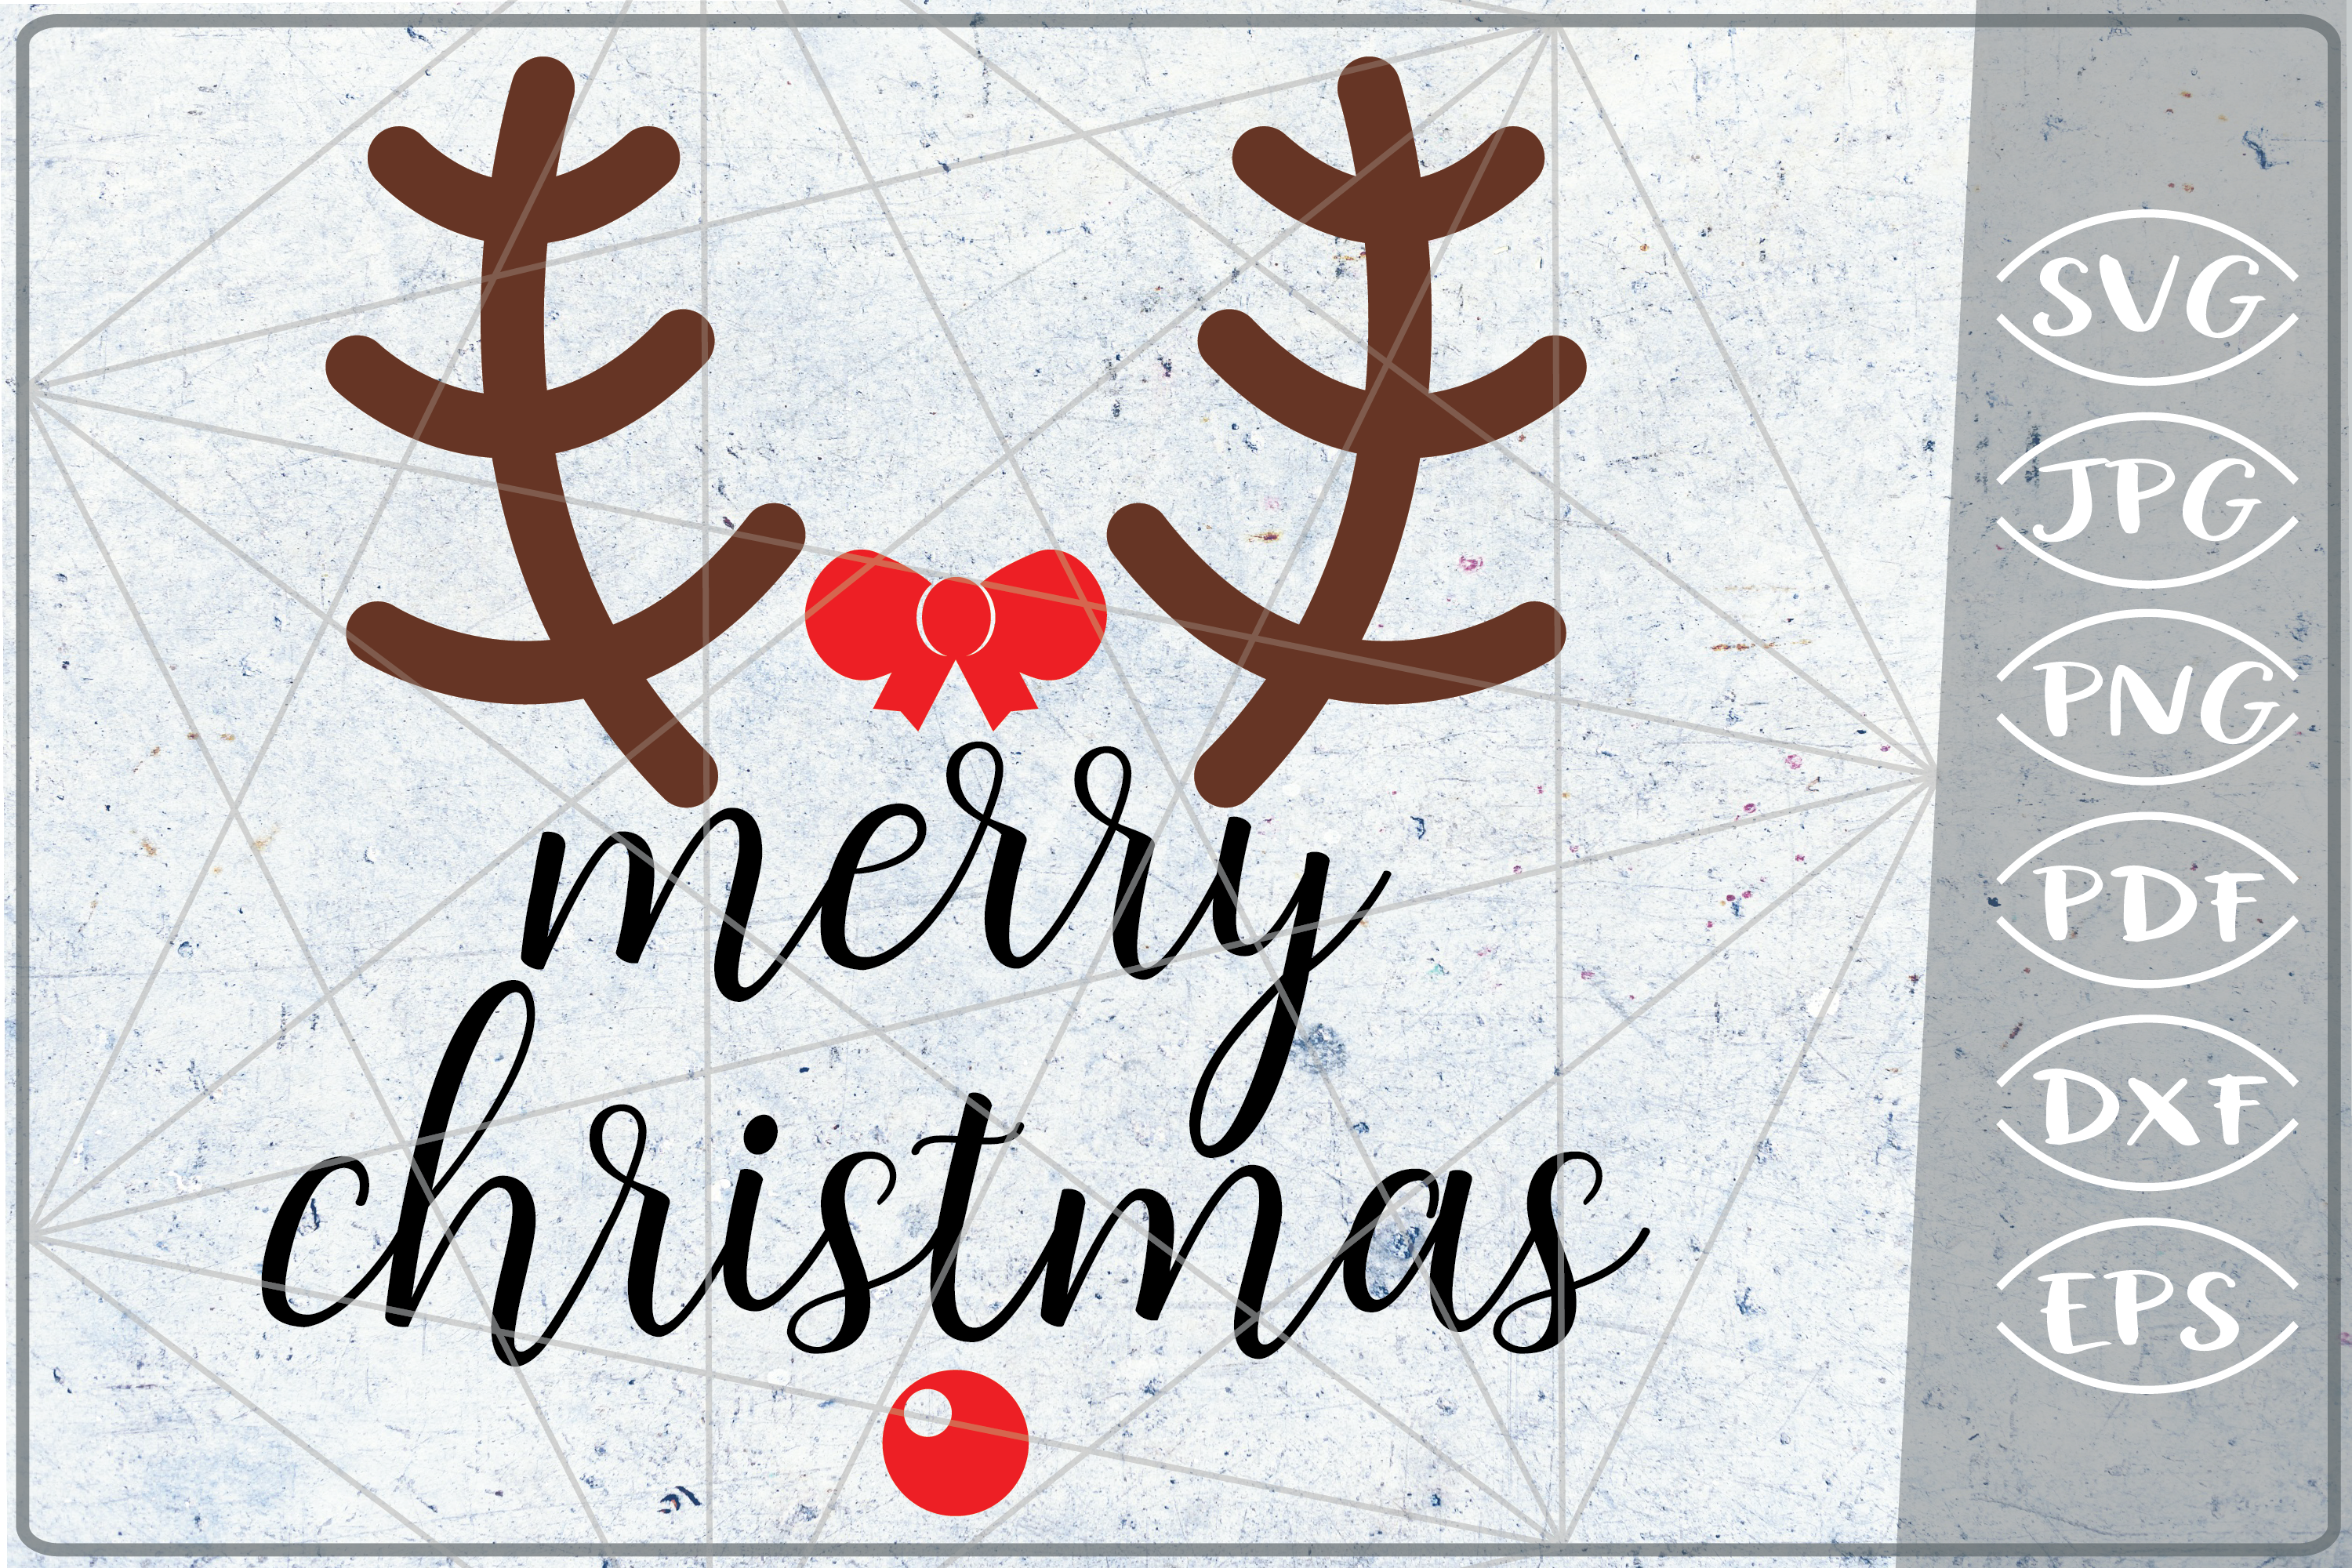 Download Free Merry Christmas Quote Graphic By Cute Graphic Creative Fabrica for Cricut Explore, Silhouette and other cutting machines.